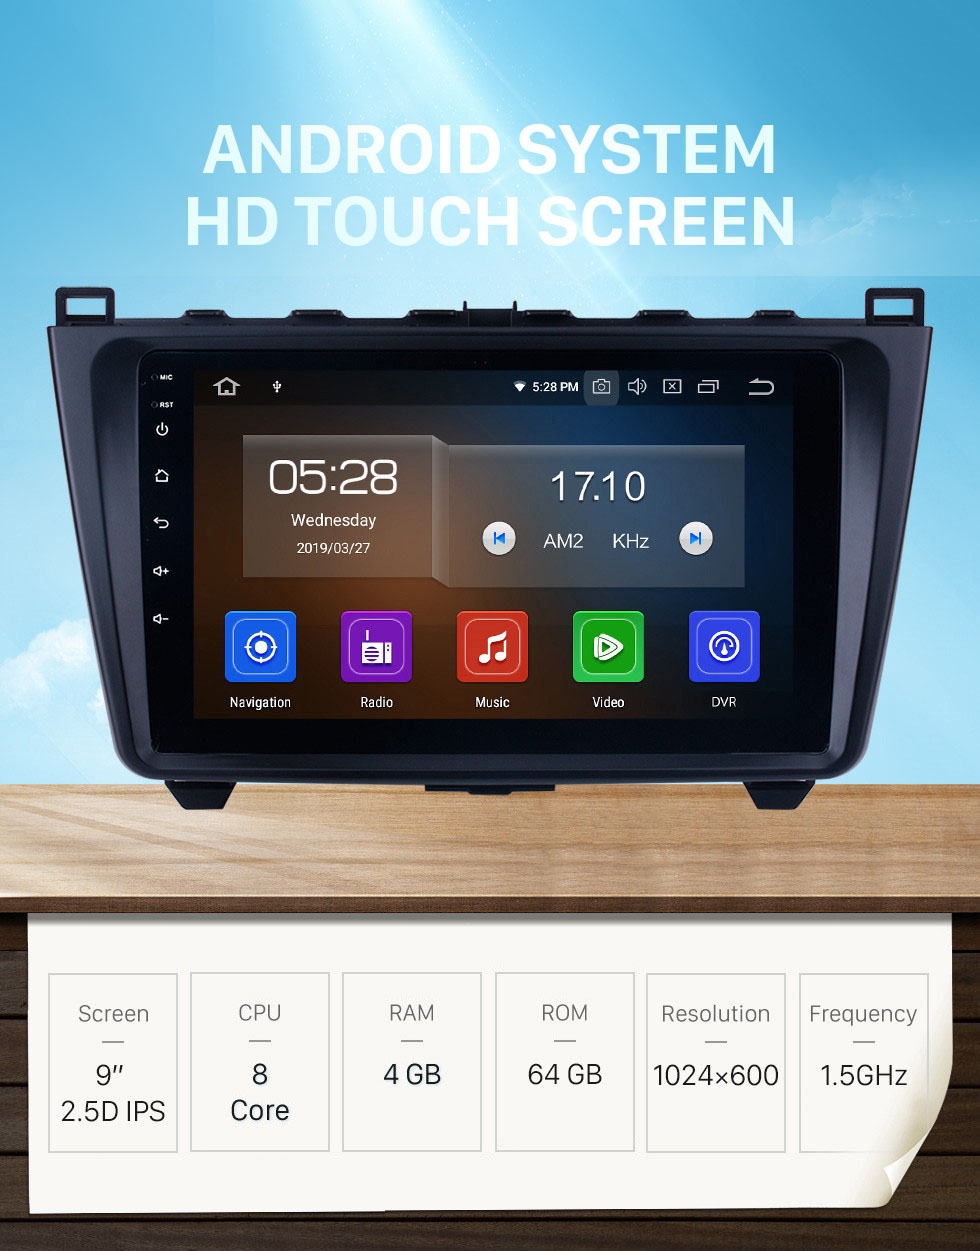 Seicane 9 inch Android 10.0 Radio GPS Navigation System Auto Stereo for 2008-2015 Mazda 6 Ruiyi with full 1024*600 Touchscreen Bluetooth Mirror link 3G WIFI support TPMS OBD2 DVR Rearview camera Steering Wheel Control